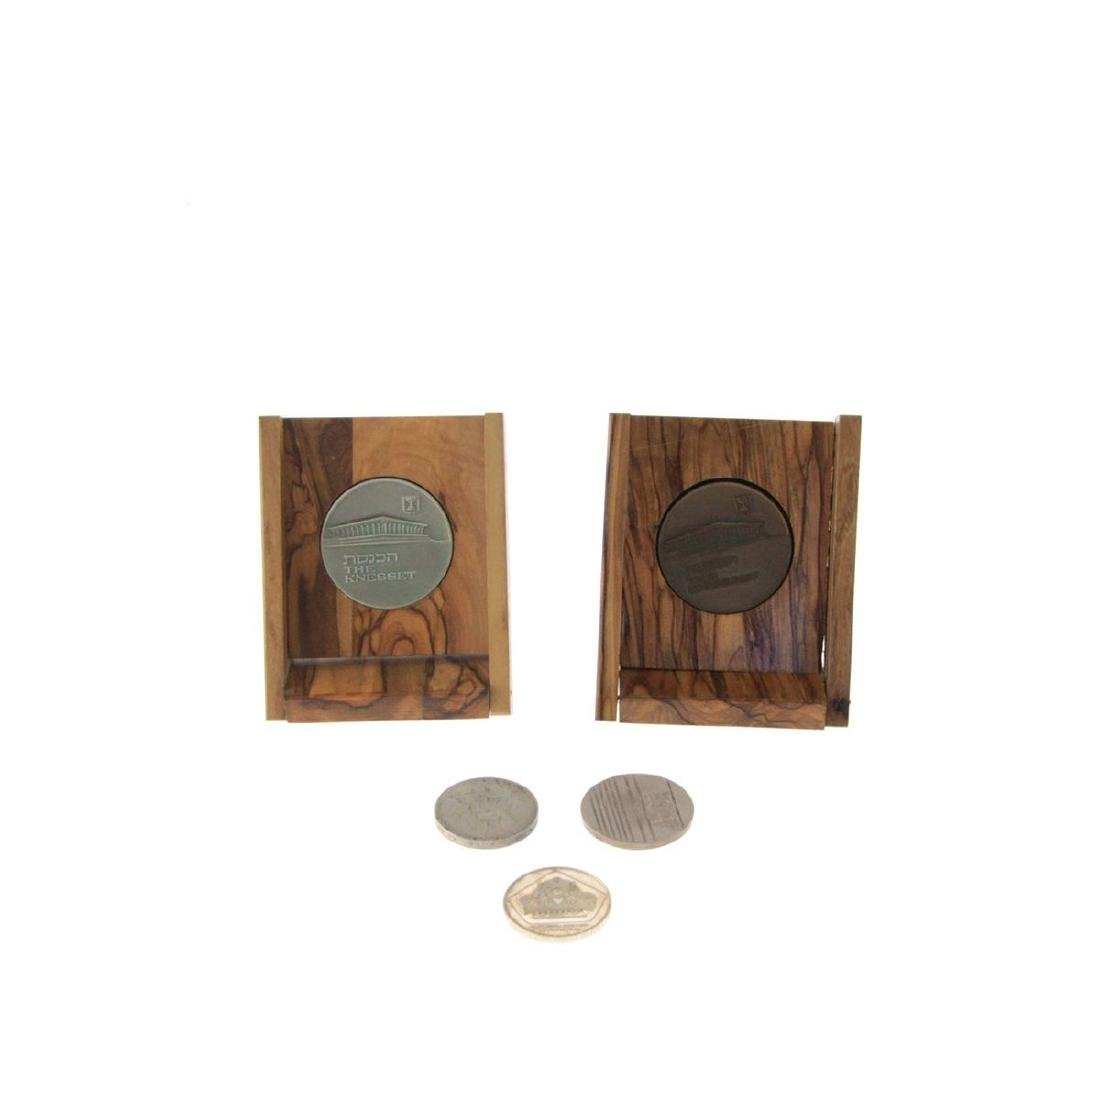 Israel Silver Coins and Medals.